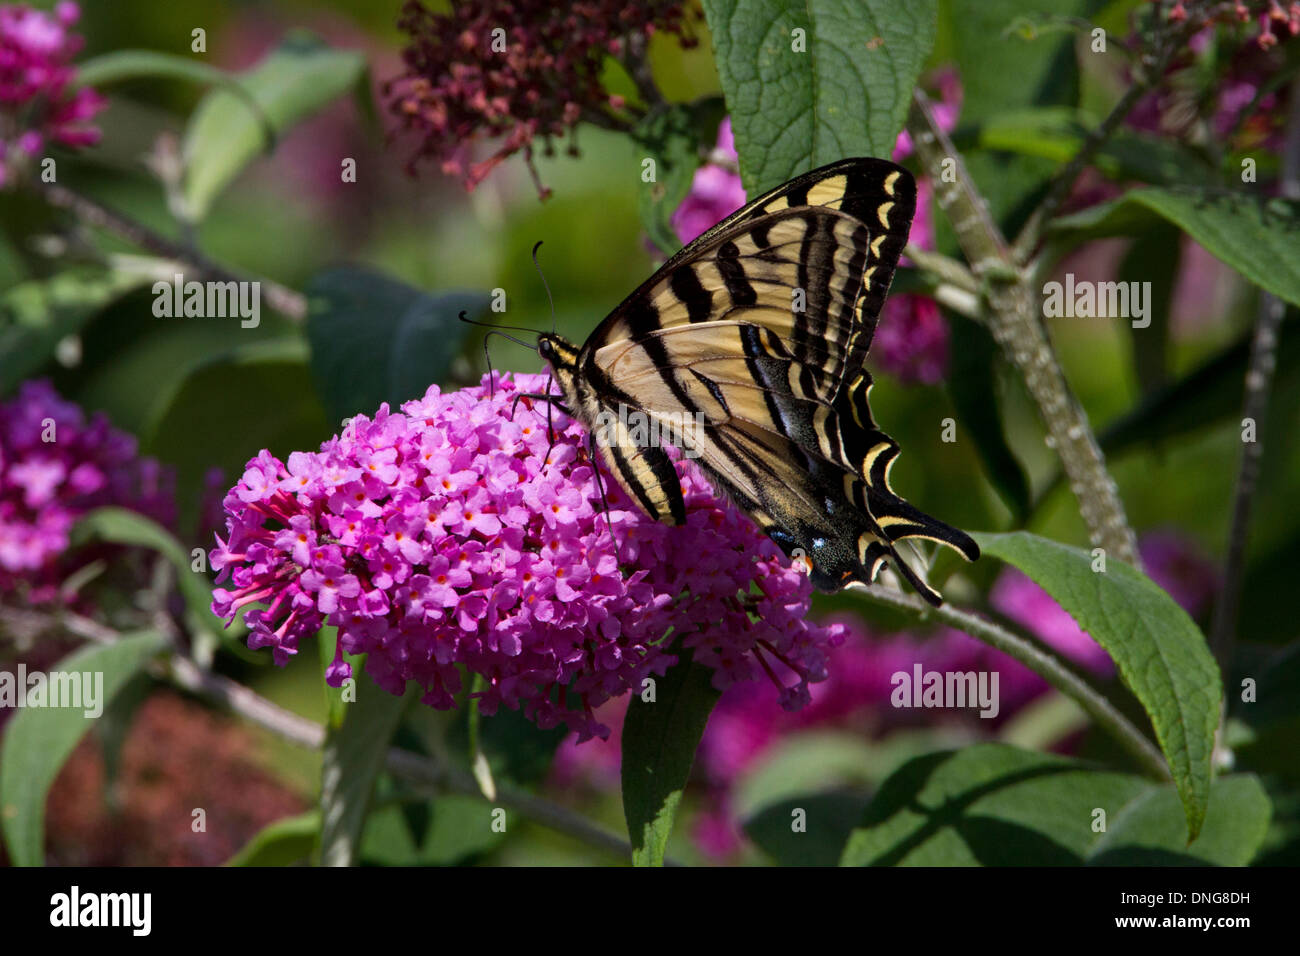 Western Tiger Swallowtail (Papilio rutulus) butterfly feeding on Buddleja flower in Nanaimo, Vancouver Island, BC,Canada in July Stock Photo